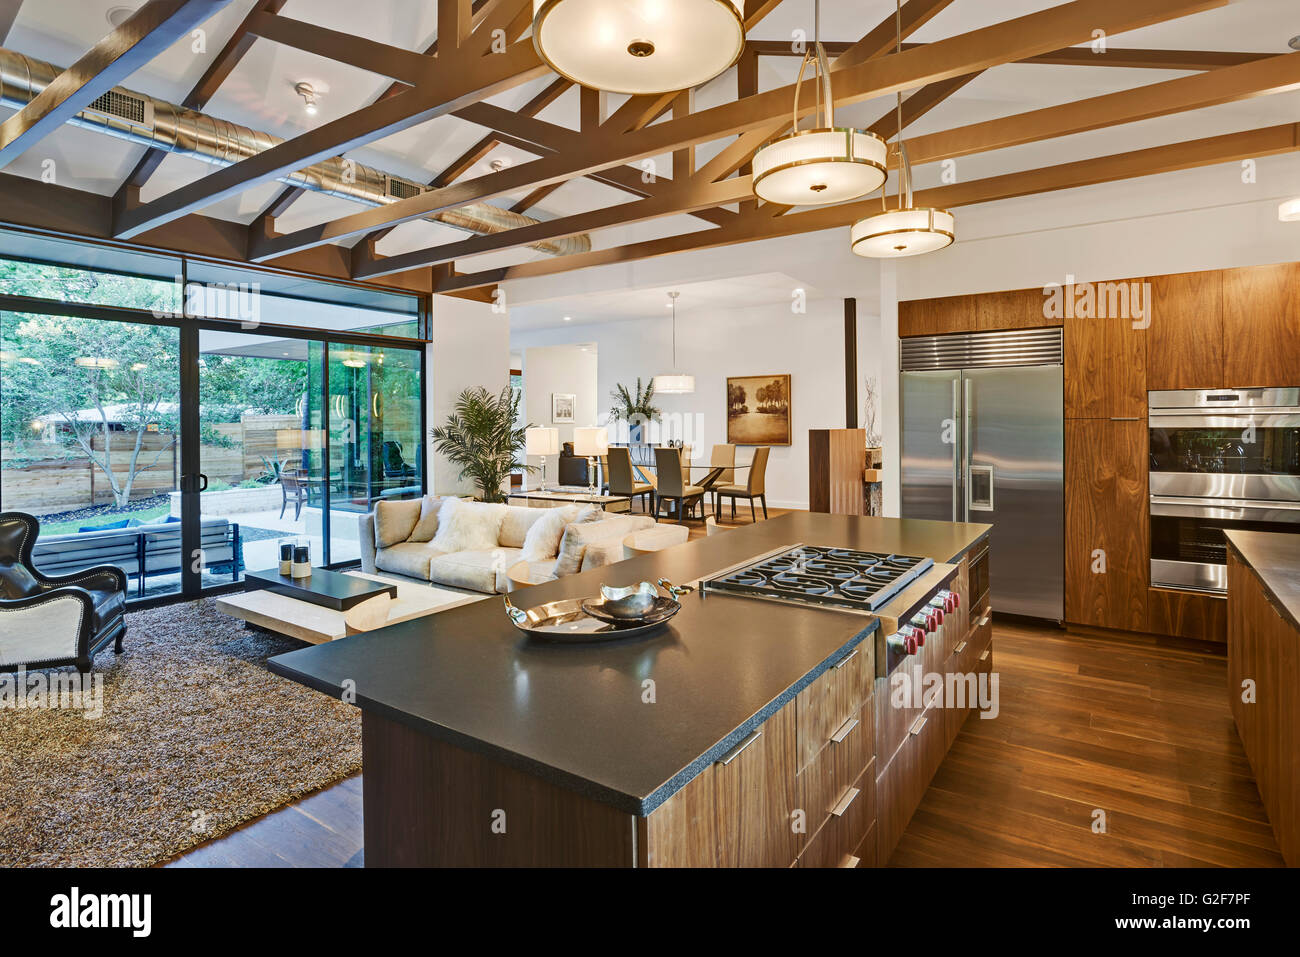 Kitchen Dining Room Living Room Open Floor Plan open floor plan of house with kitchen, living room and dining room